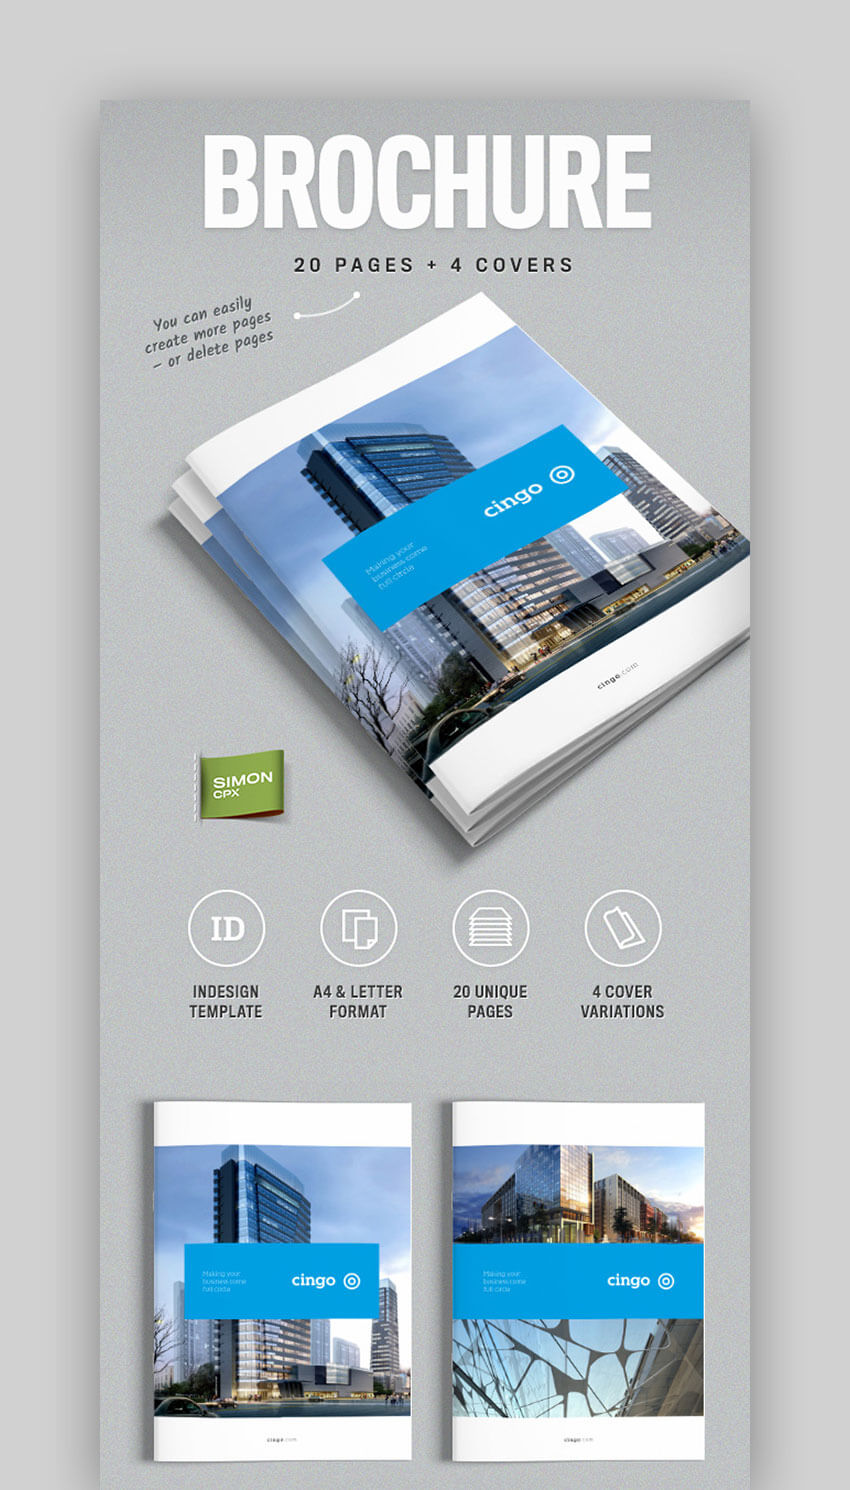 30 Best Indesign Brochure Templates - Creative Business pertaining to Letter Size Brochure Template